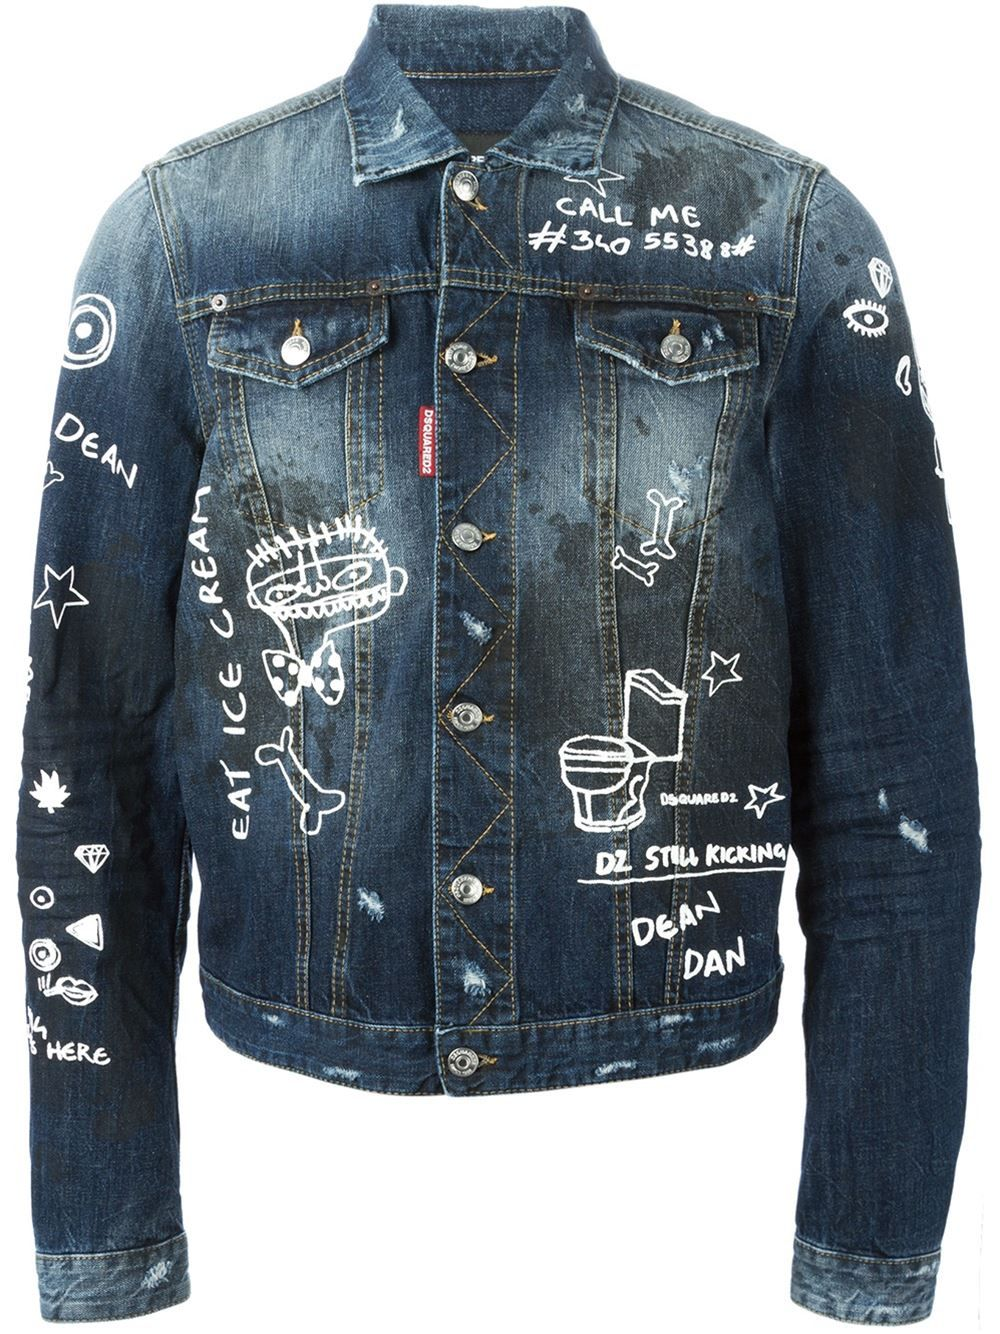 f555fe61322f Dsquared2 hand painted denim jacket